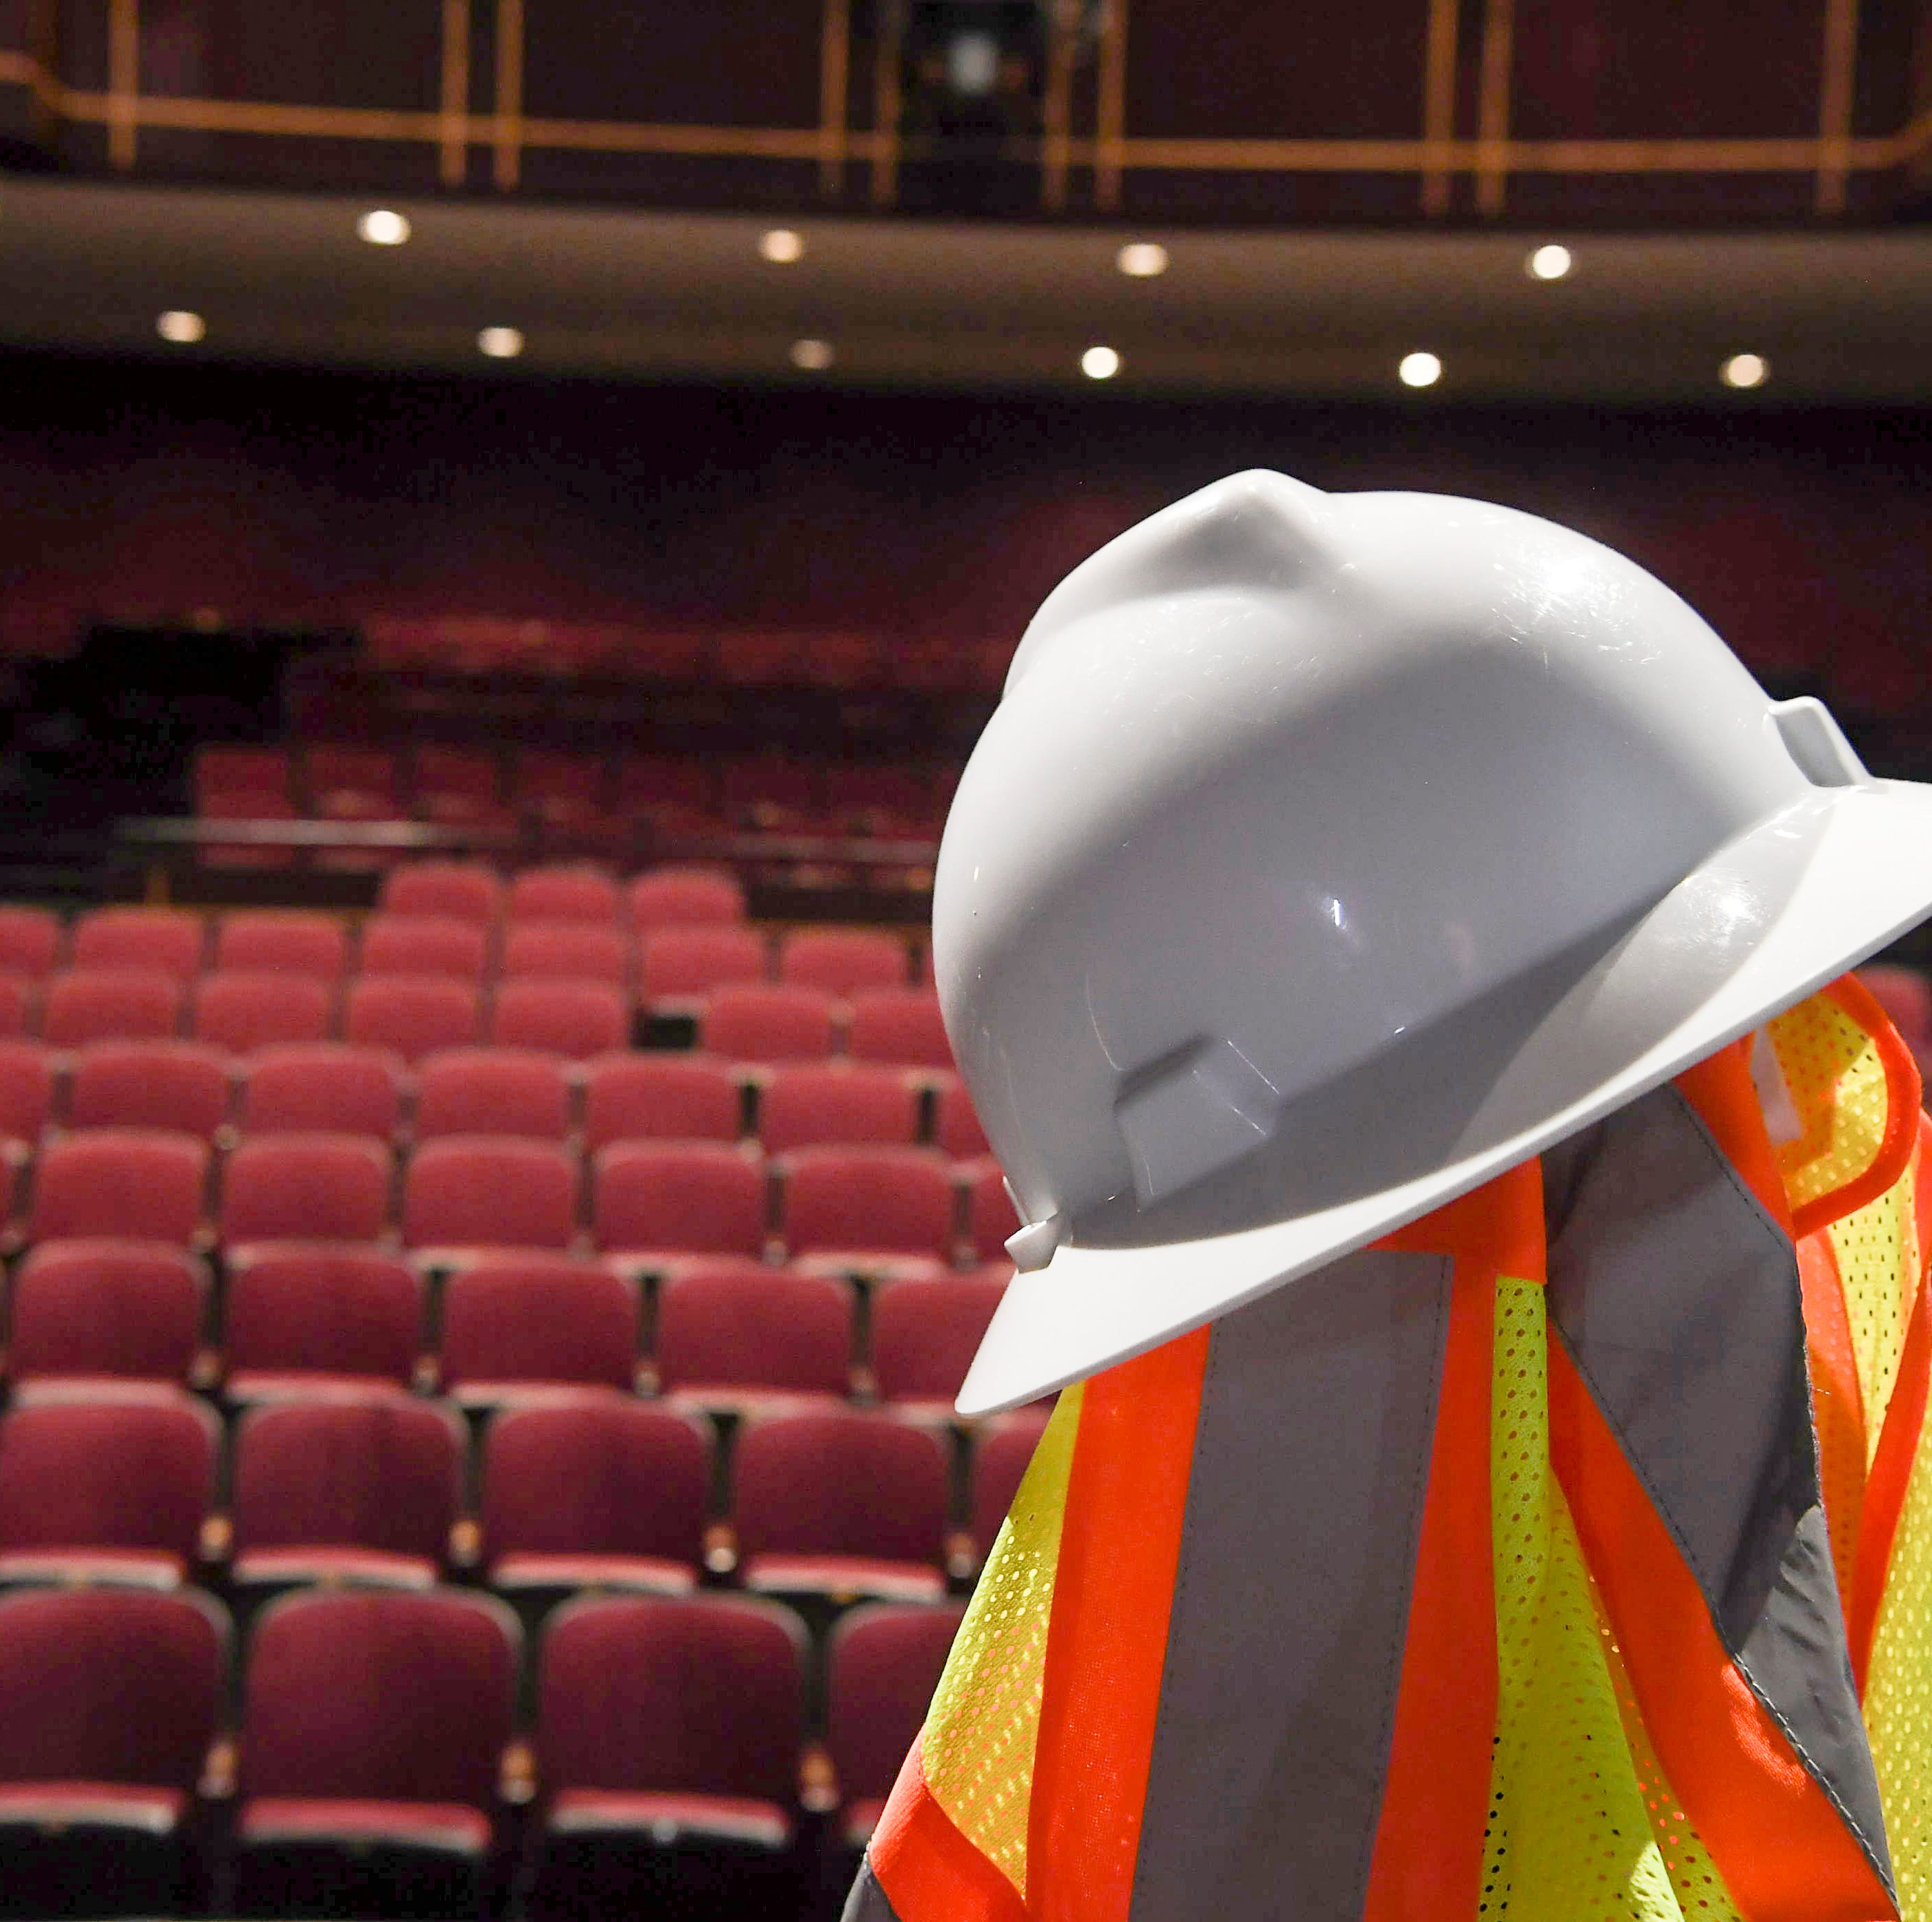 Diana Wortham Theatre morphs into 3-venue complex